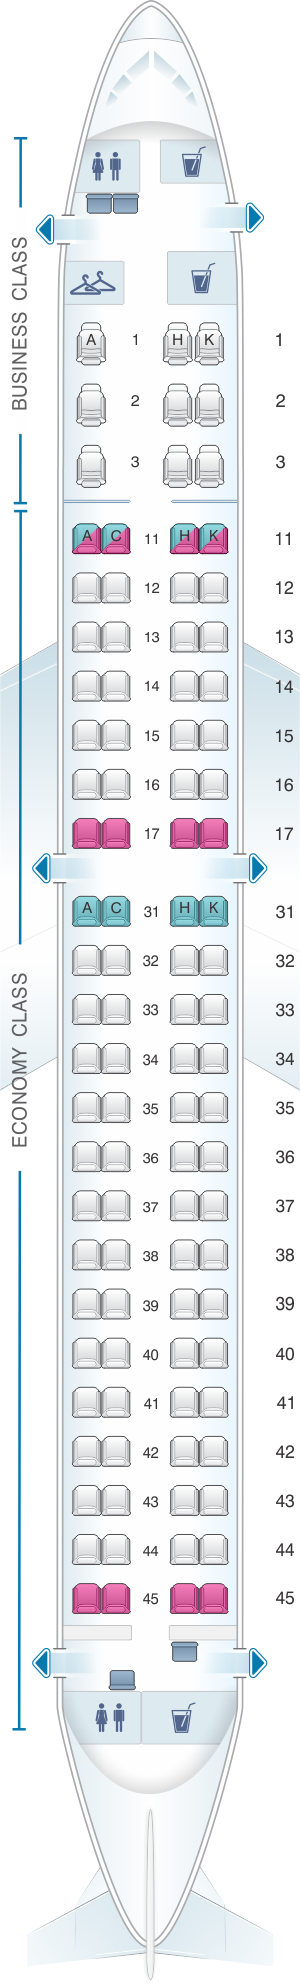 Seat map for Air Astana Embraer 190